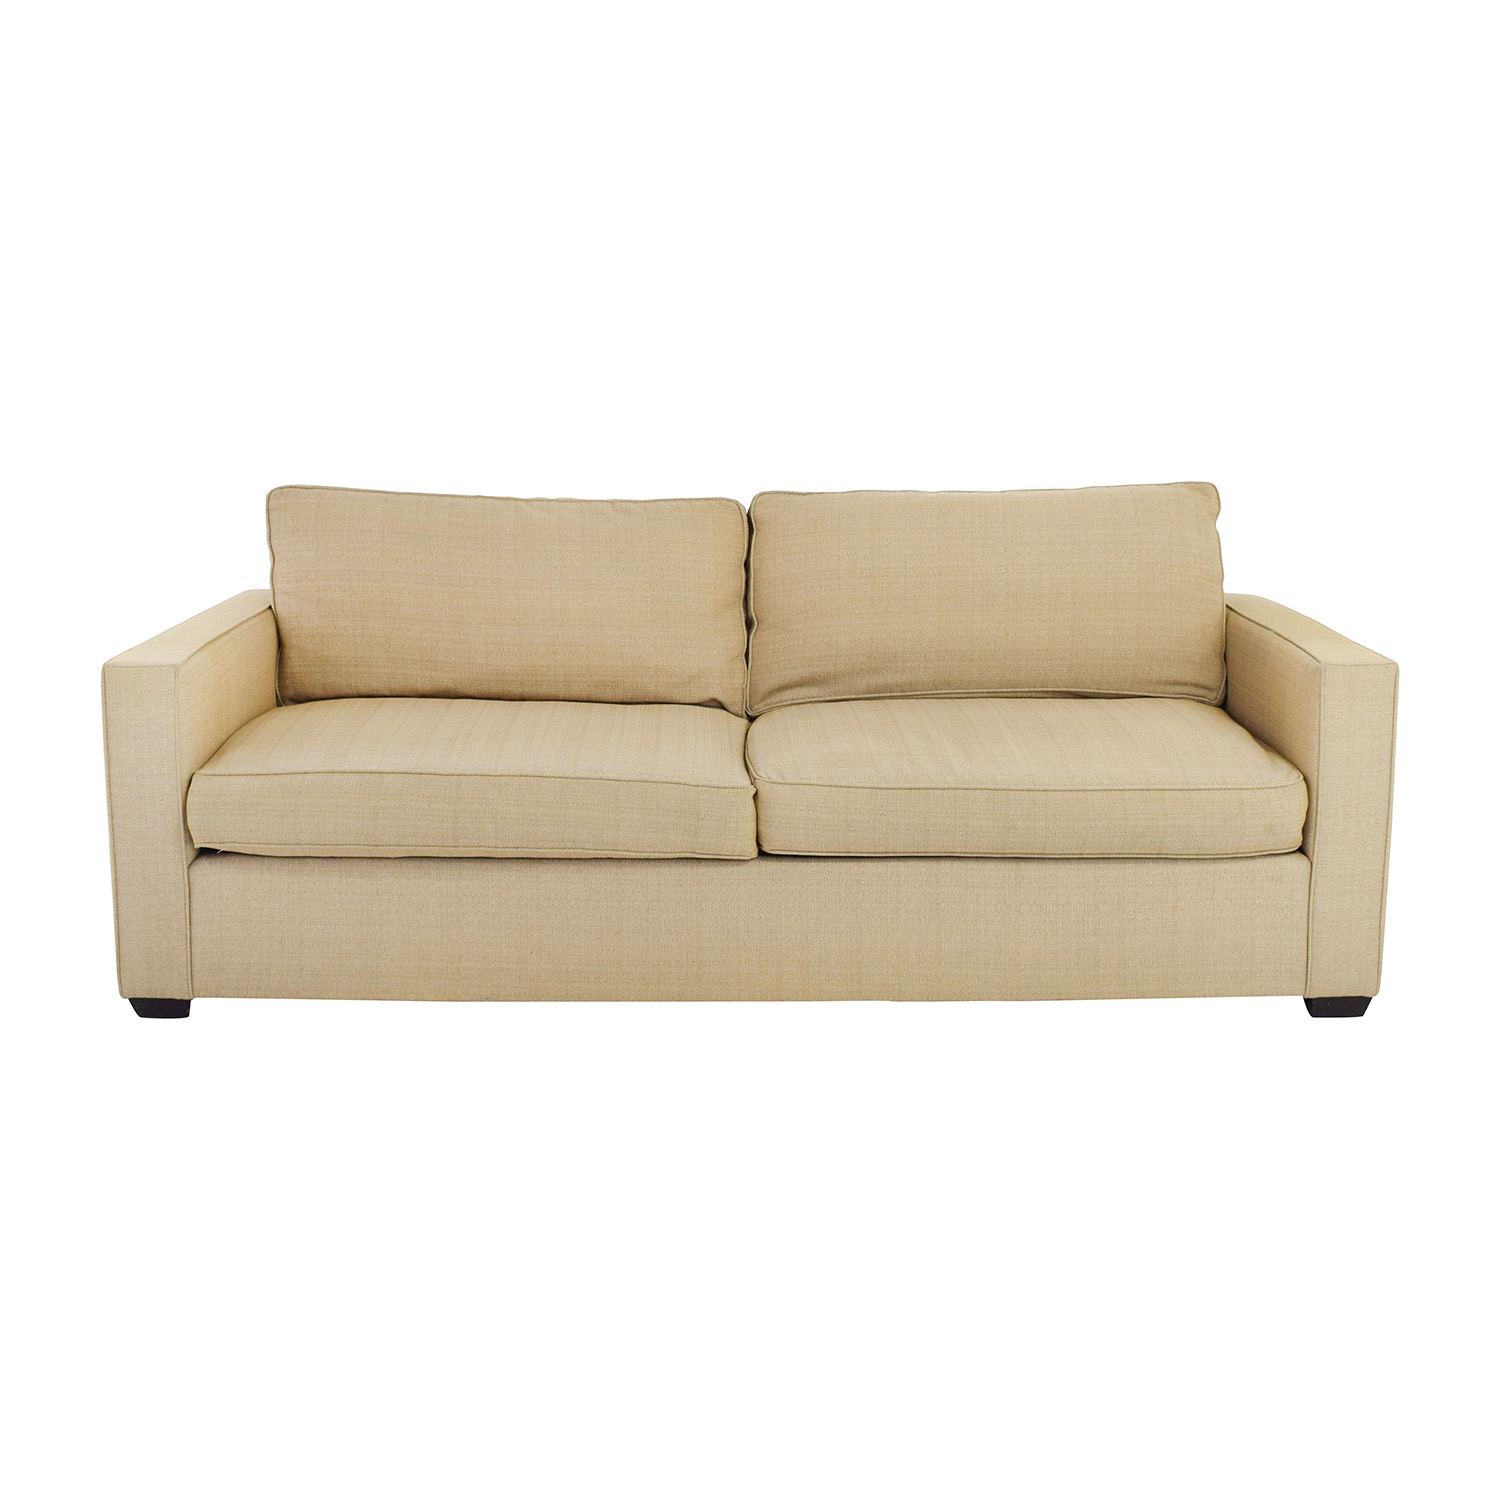 shop Room and Board Room & Board Beige Two Cushion Couch online